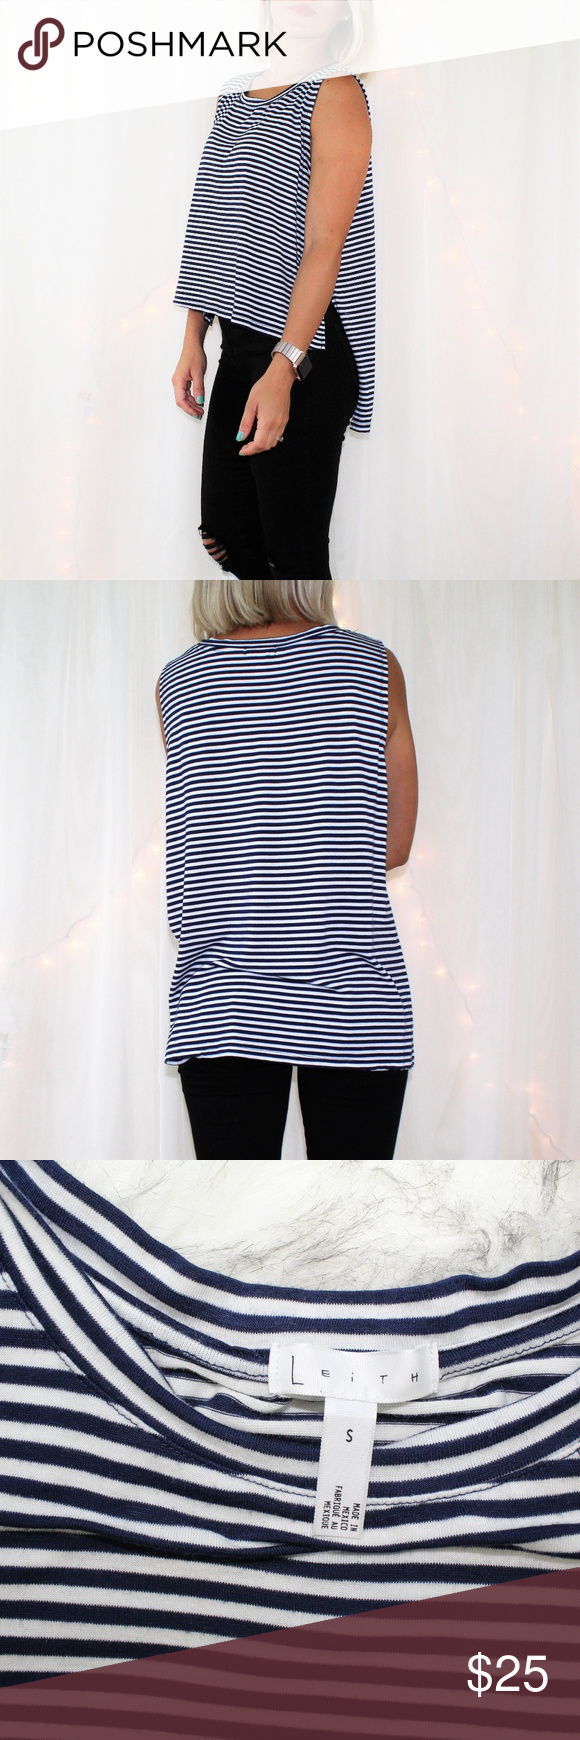 LEiTH Blue & White Striped High Low Muscle Tank Nautical look Can also be worn with legging Side hem slits Loose fit In very good condition No stains, tears or piling Size-Small Color-White and Navy From Smoke Free Home  I'm Always Open To Reasonable Offers Via Offer Button Or Click